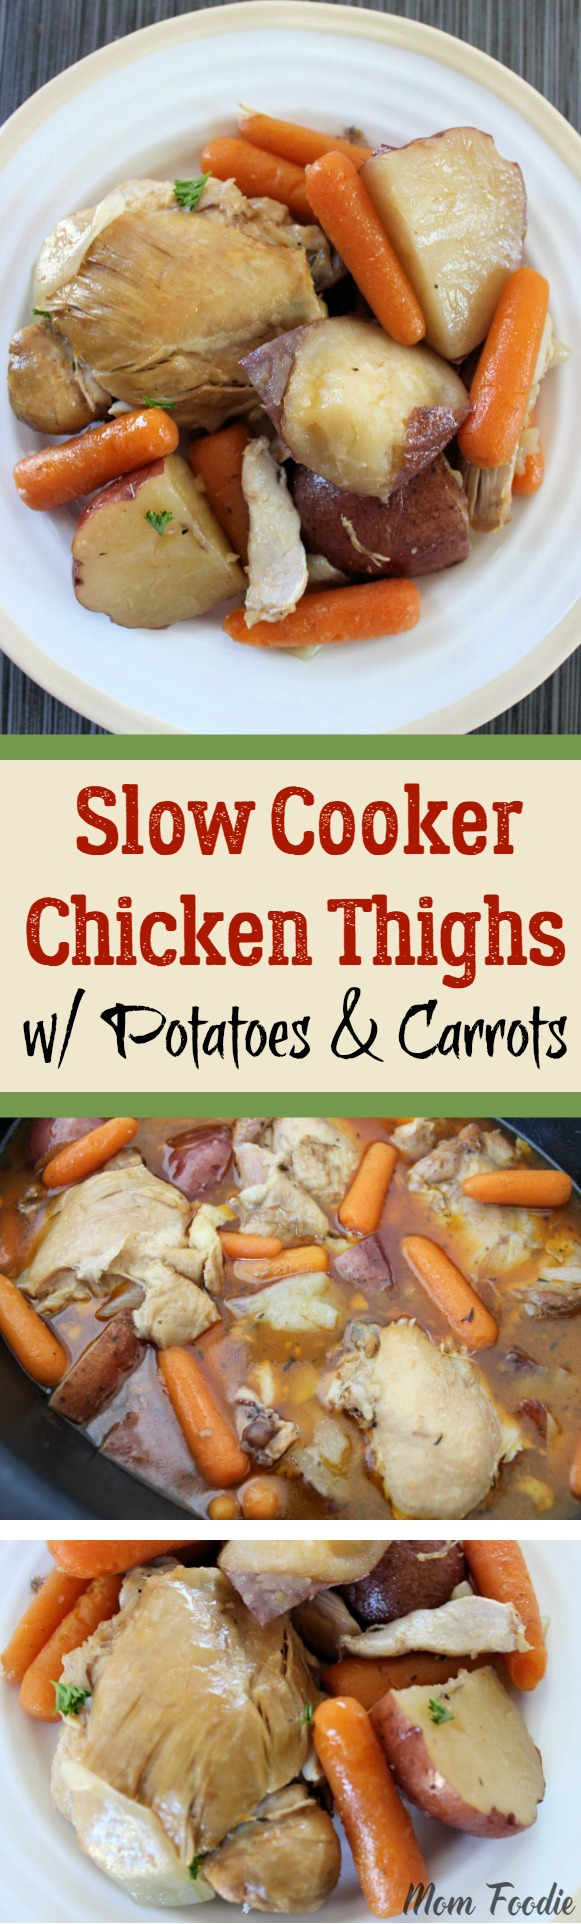 Slow Cooker Chicken Thighs with Potatoes & Carrots